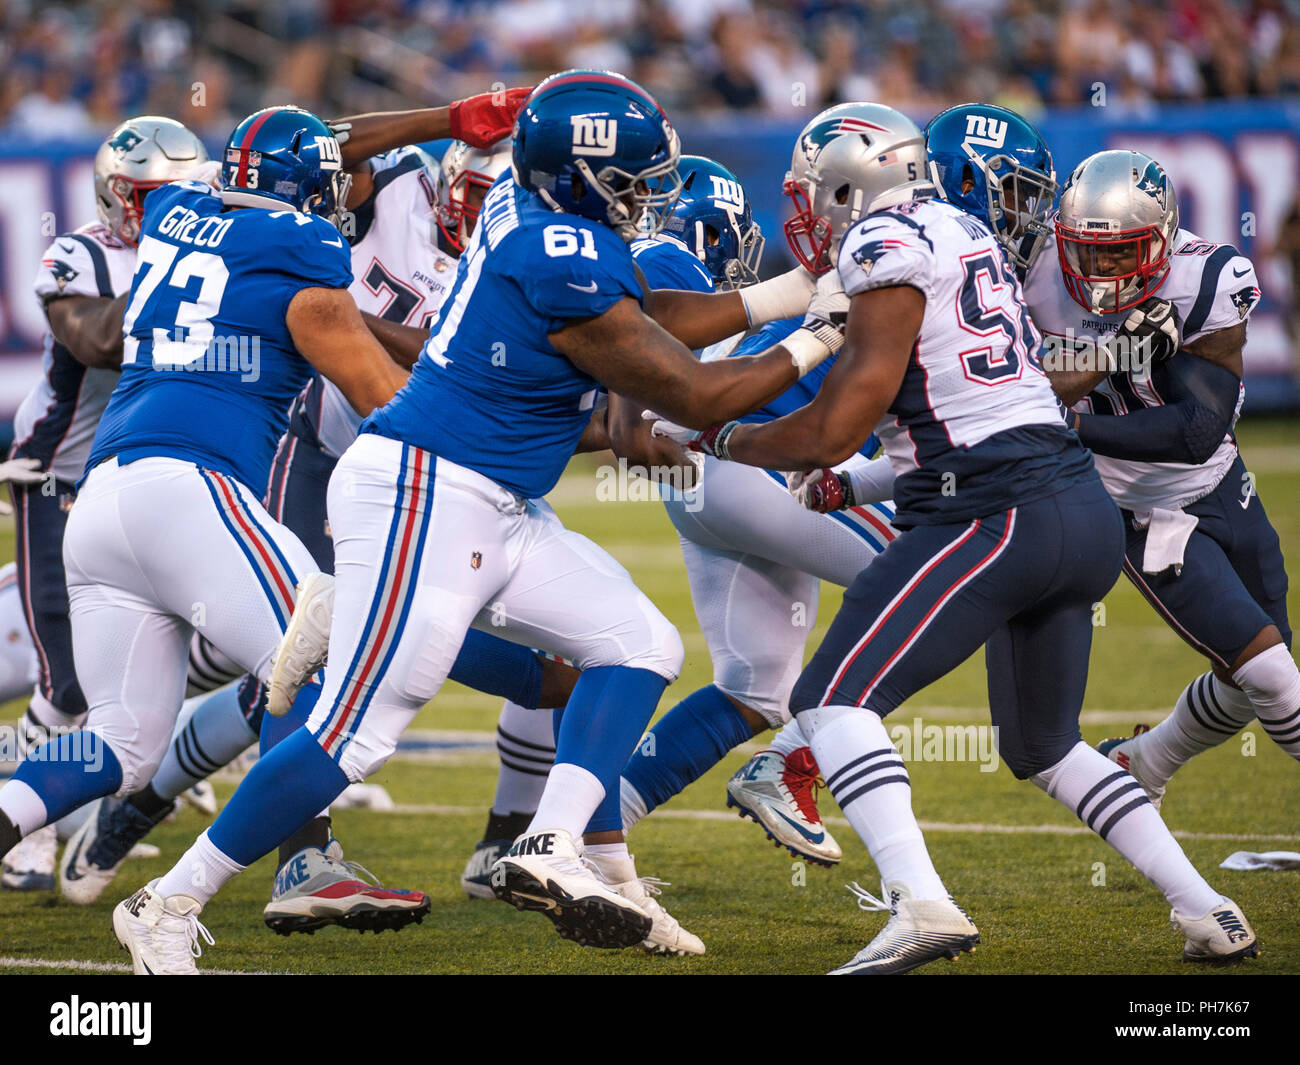 August 31, 2018 - East Rutherford, New Jersey, U.S. - New York Giants offensive tackle Nick Becton (61) blocks New England Patriots defensive end Keionta Davis (58) during a preseason game between the New England Patriots and the New York Giants at MetLife Stadium in East Rutherford, New Jersey. Duncan Williams/CSM - Stock Image